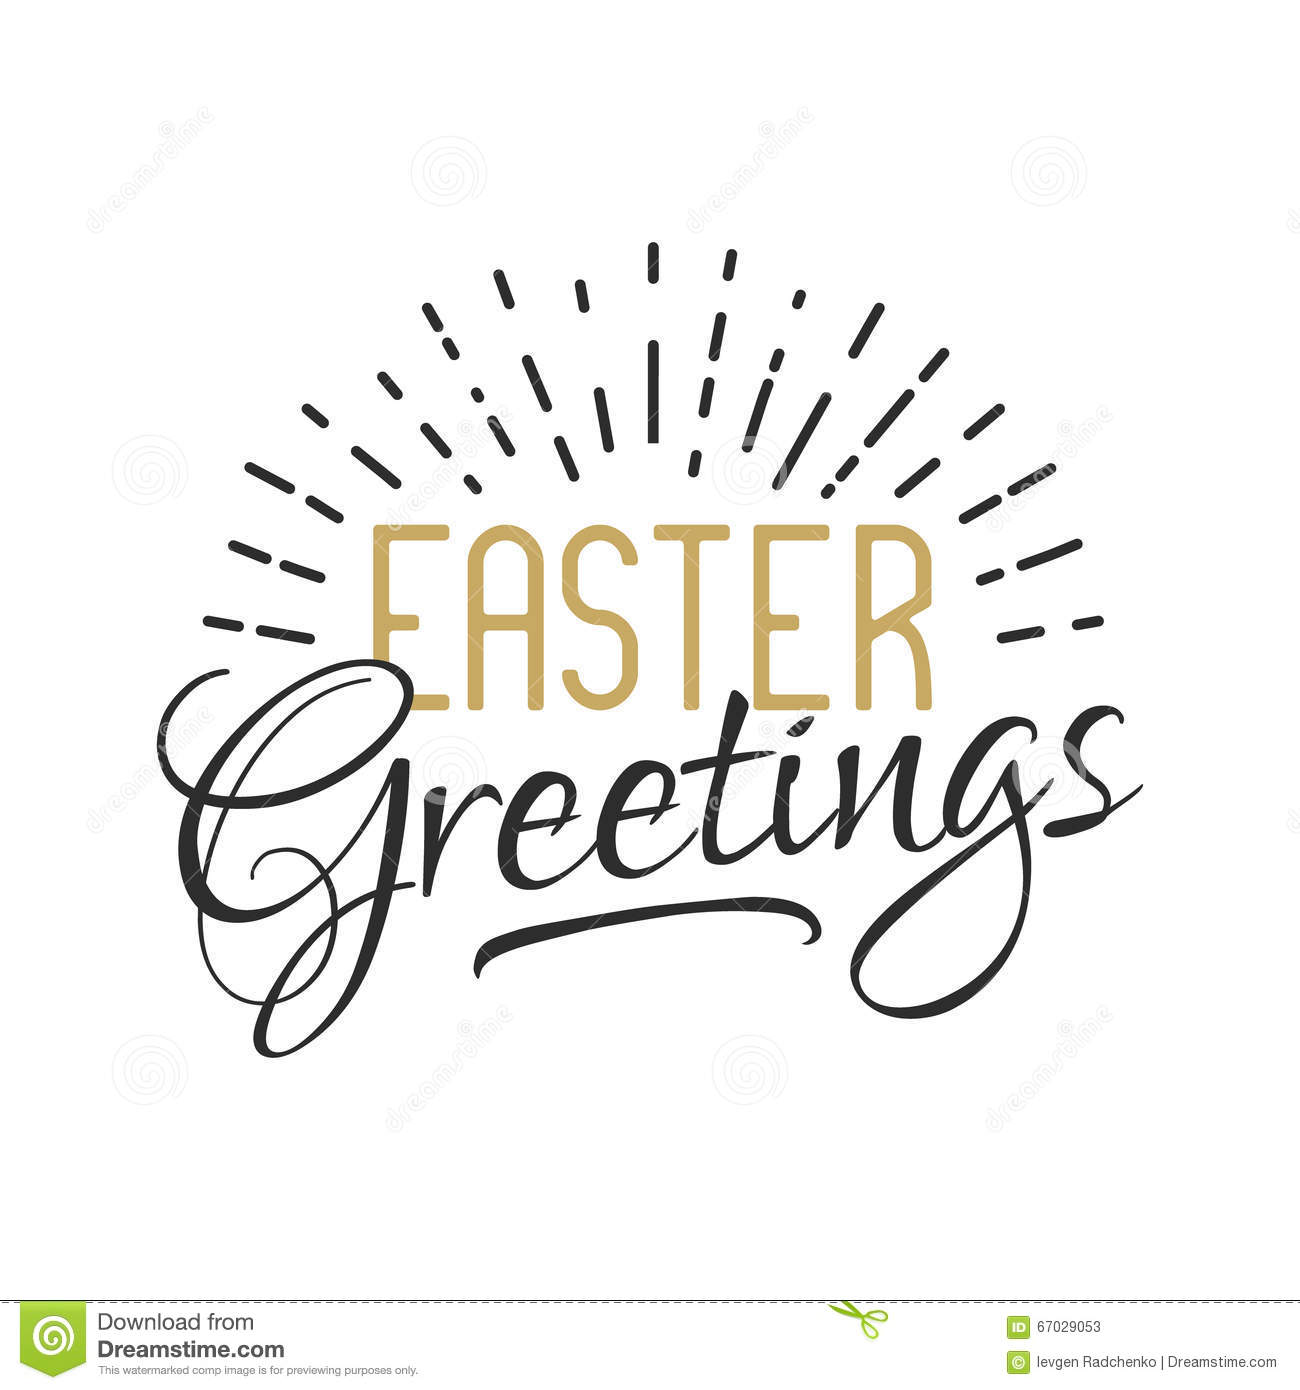 Easter Sign Easter Greetings Easter Wishes Overlay Lettering